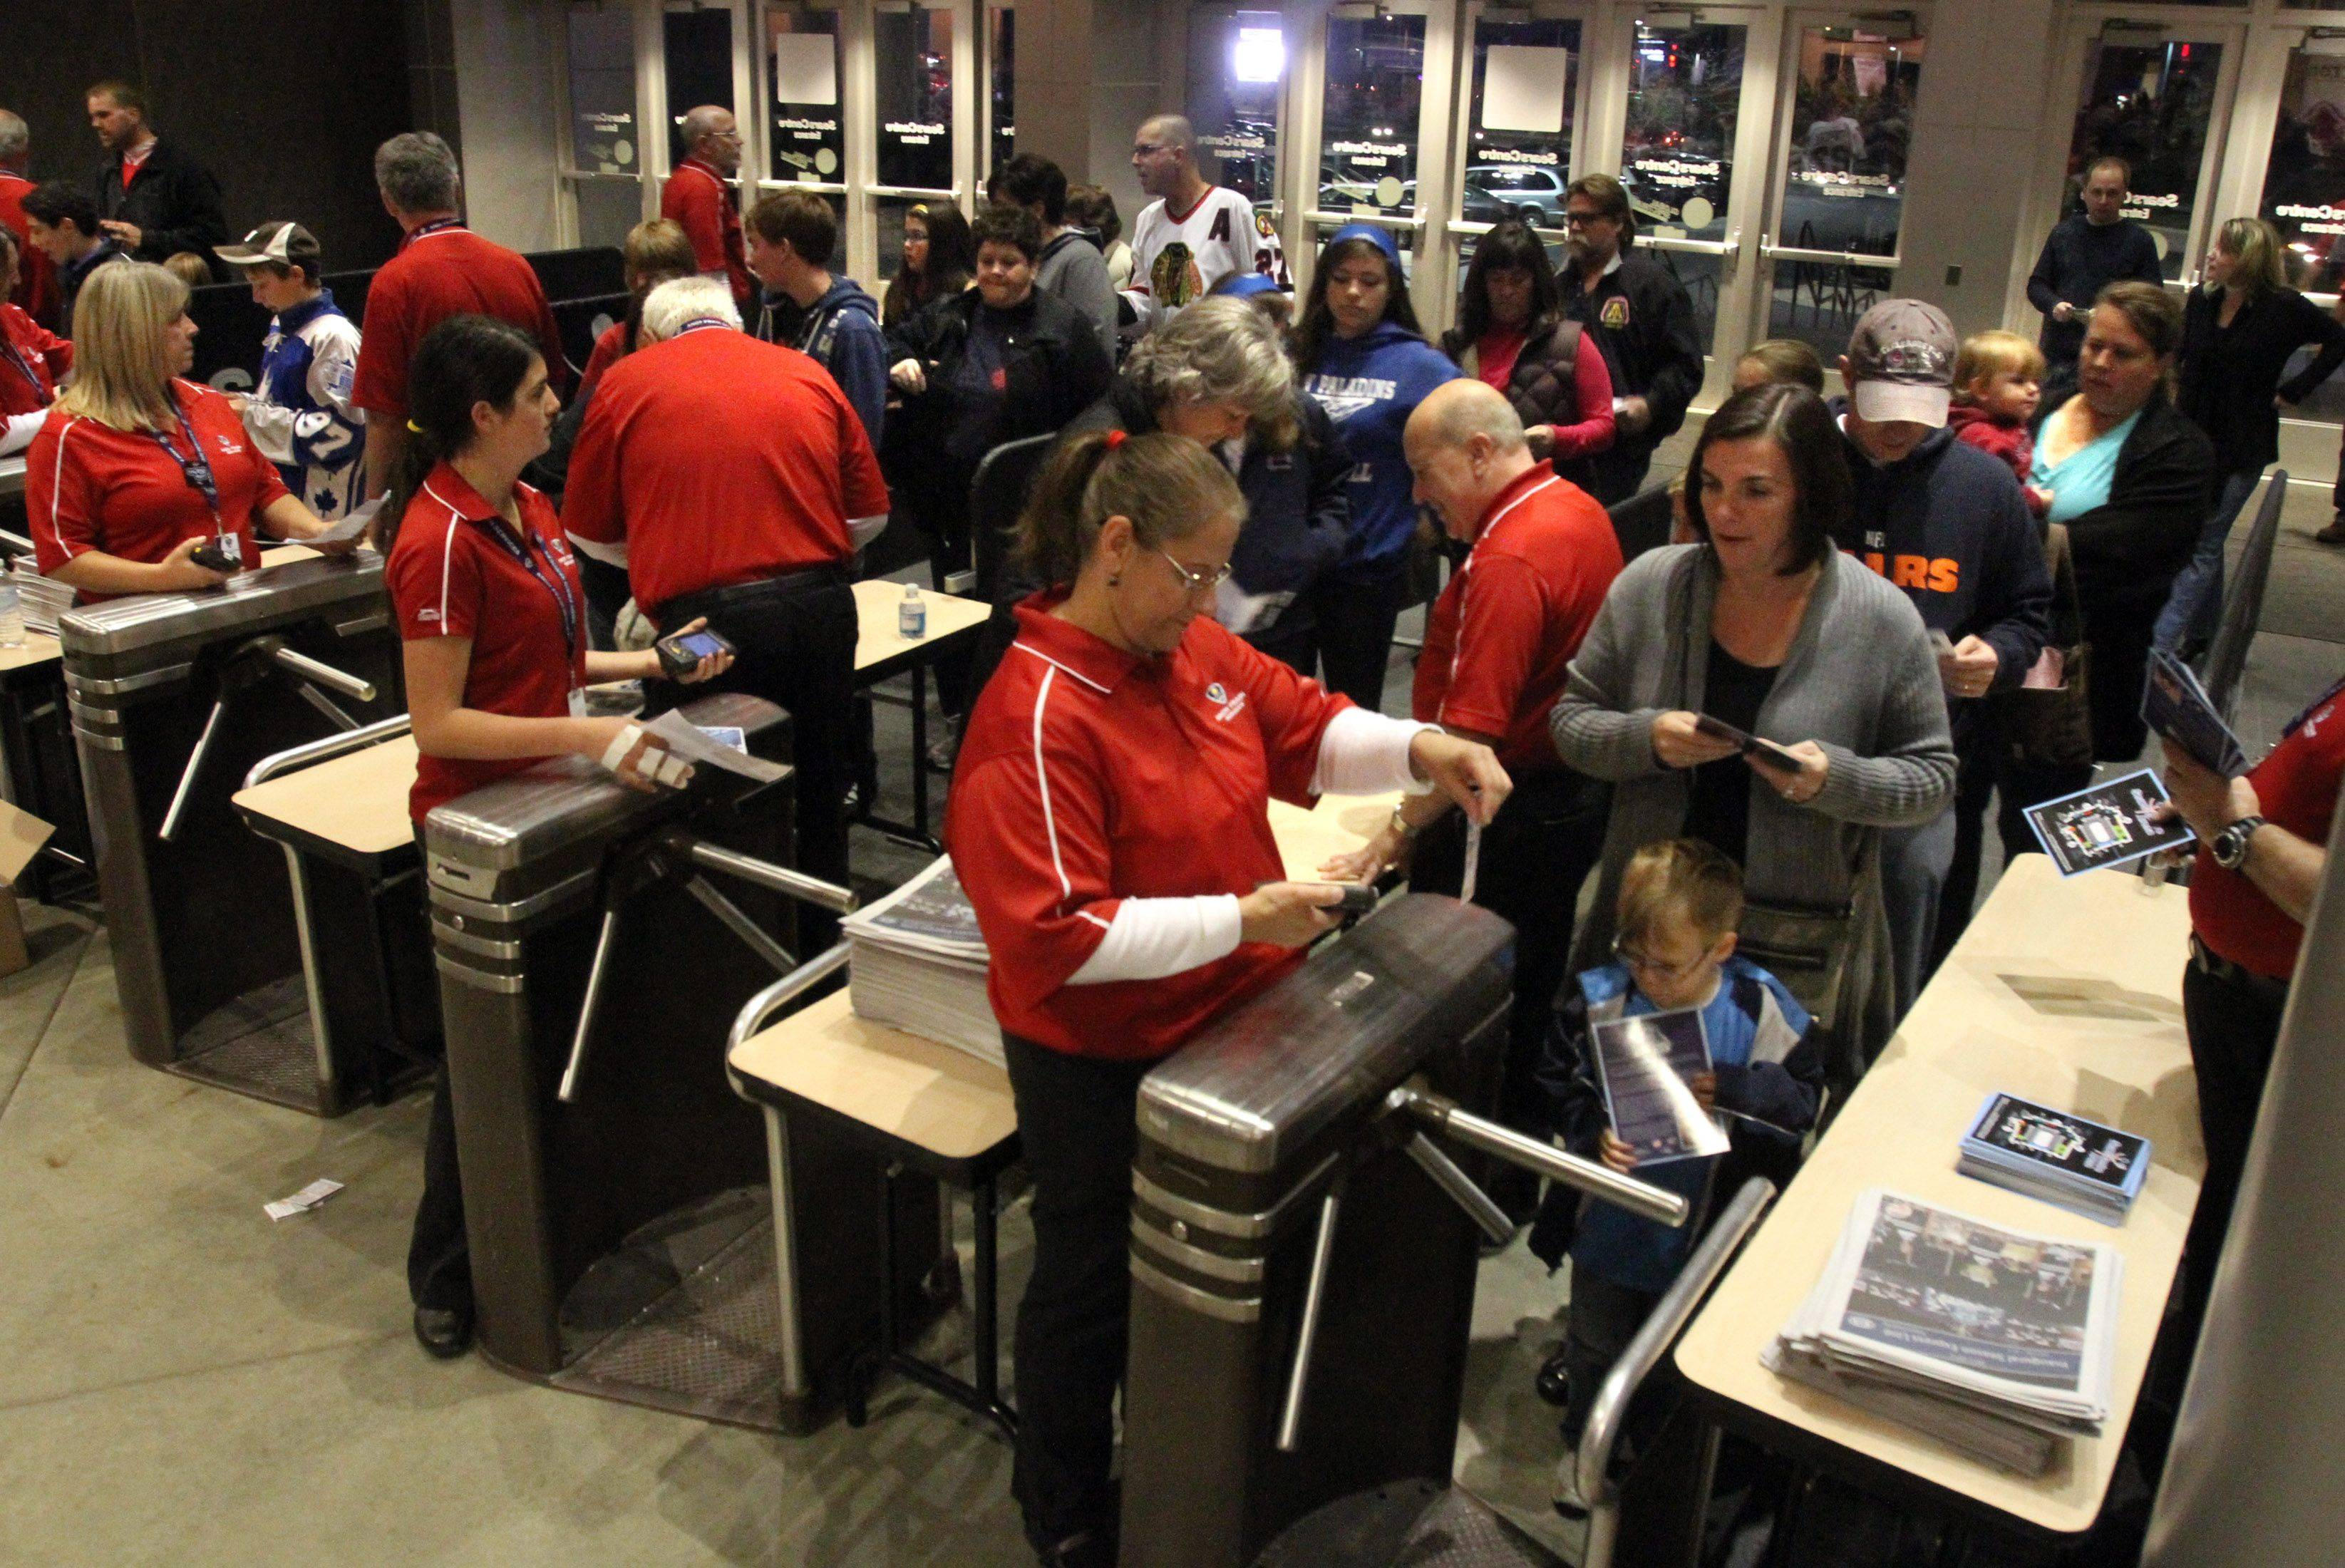 Patrons enter the Sears Centre in Hoffman Estates for the Chicago Express home opener against Kalamazoo Wings on Saturday, October 22nd.